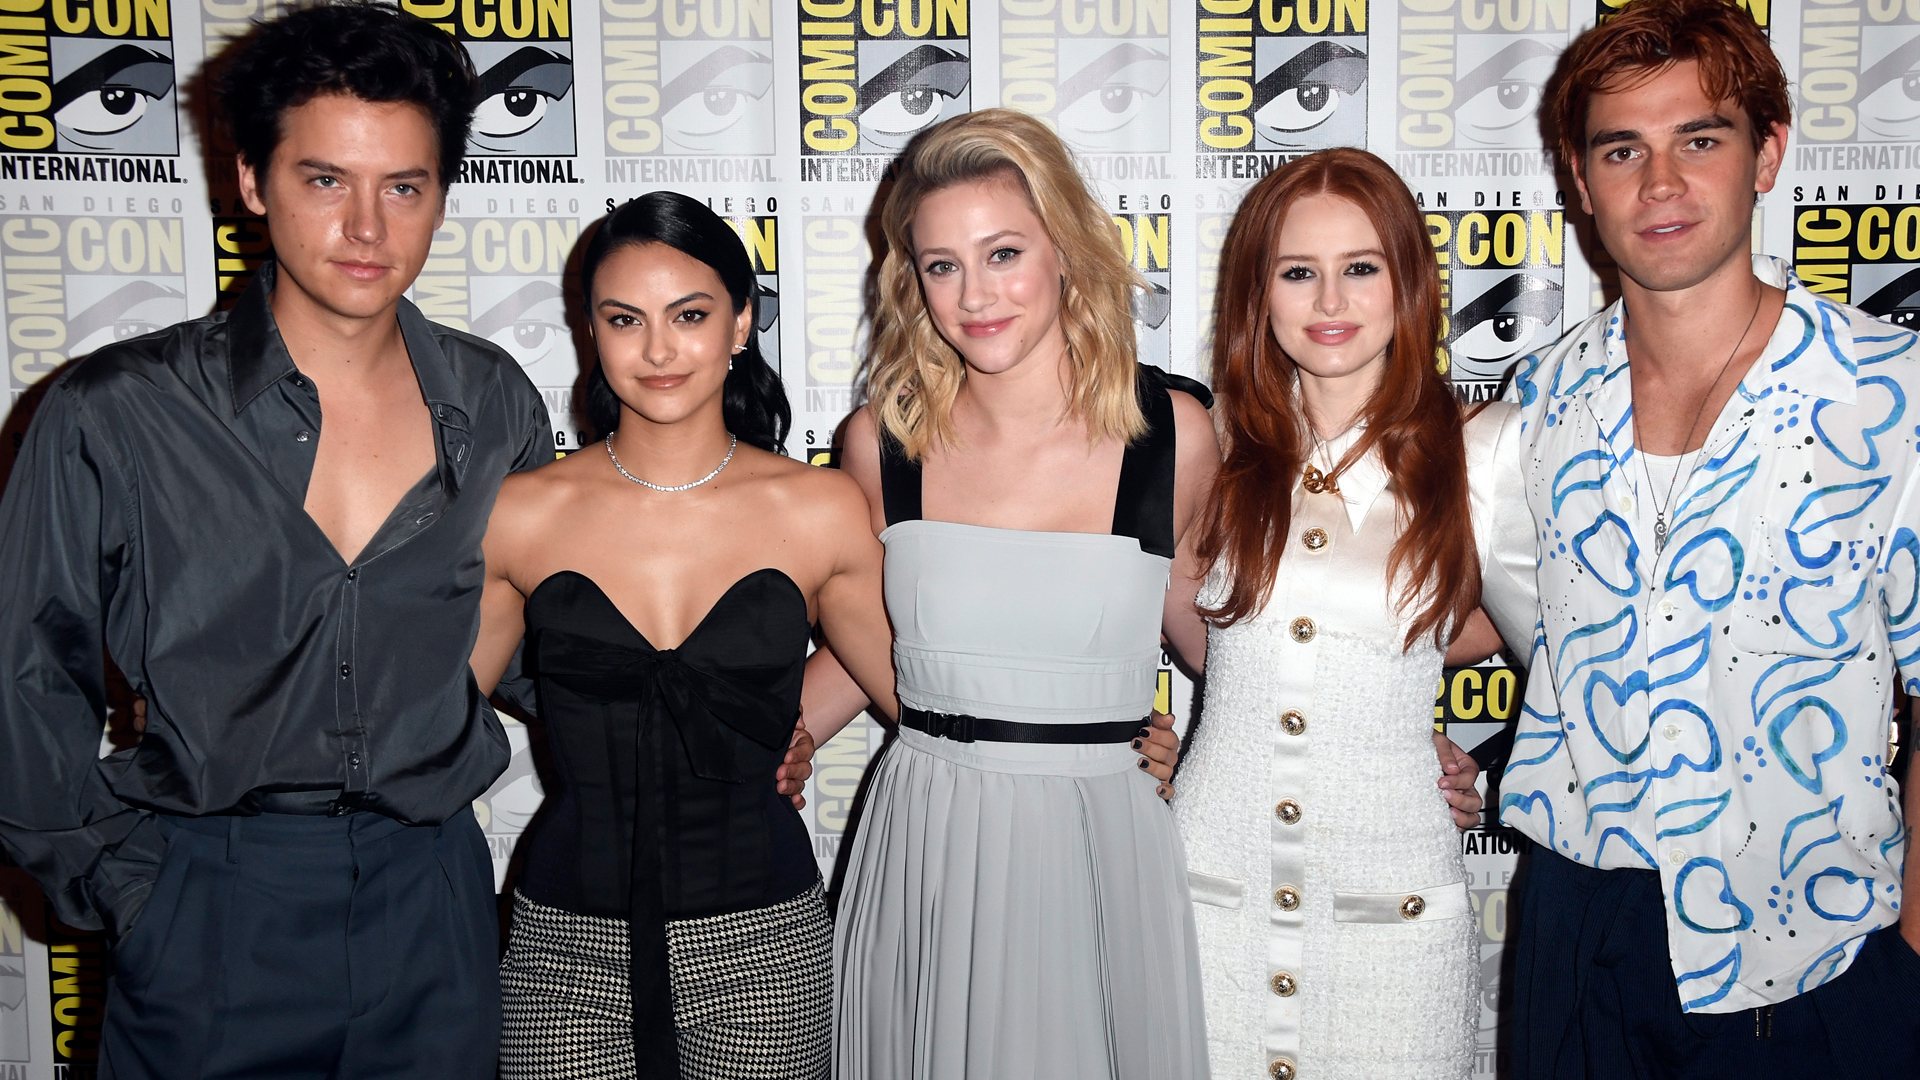 Cole Sprouse, Camila Mendes, Madelaine Petsch, Lili Reinhart, and KJ Apa from 'Riverdale' at 2019 Comic-Con in San Diego, CA